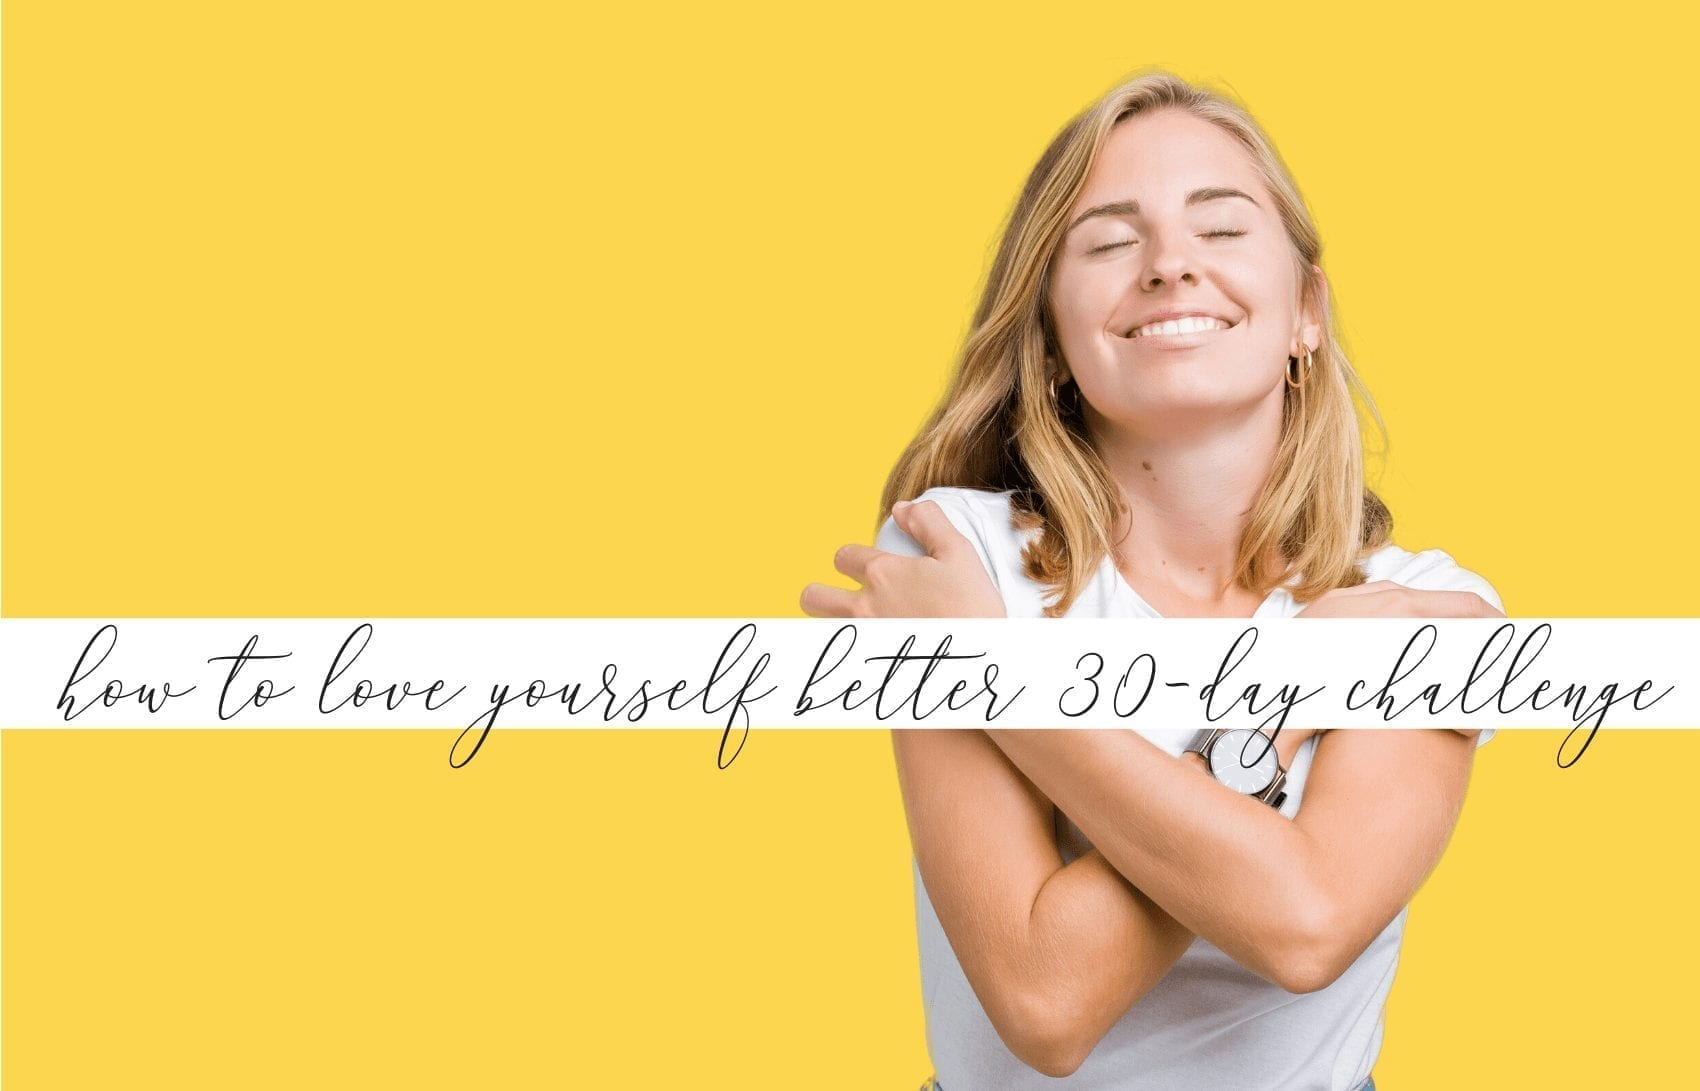 Need to take better care of yourself? I challenge you to 30 days of self-love! For the next 30 days, pamper yourself with this challenge!